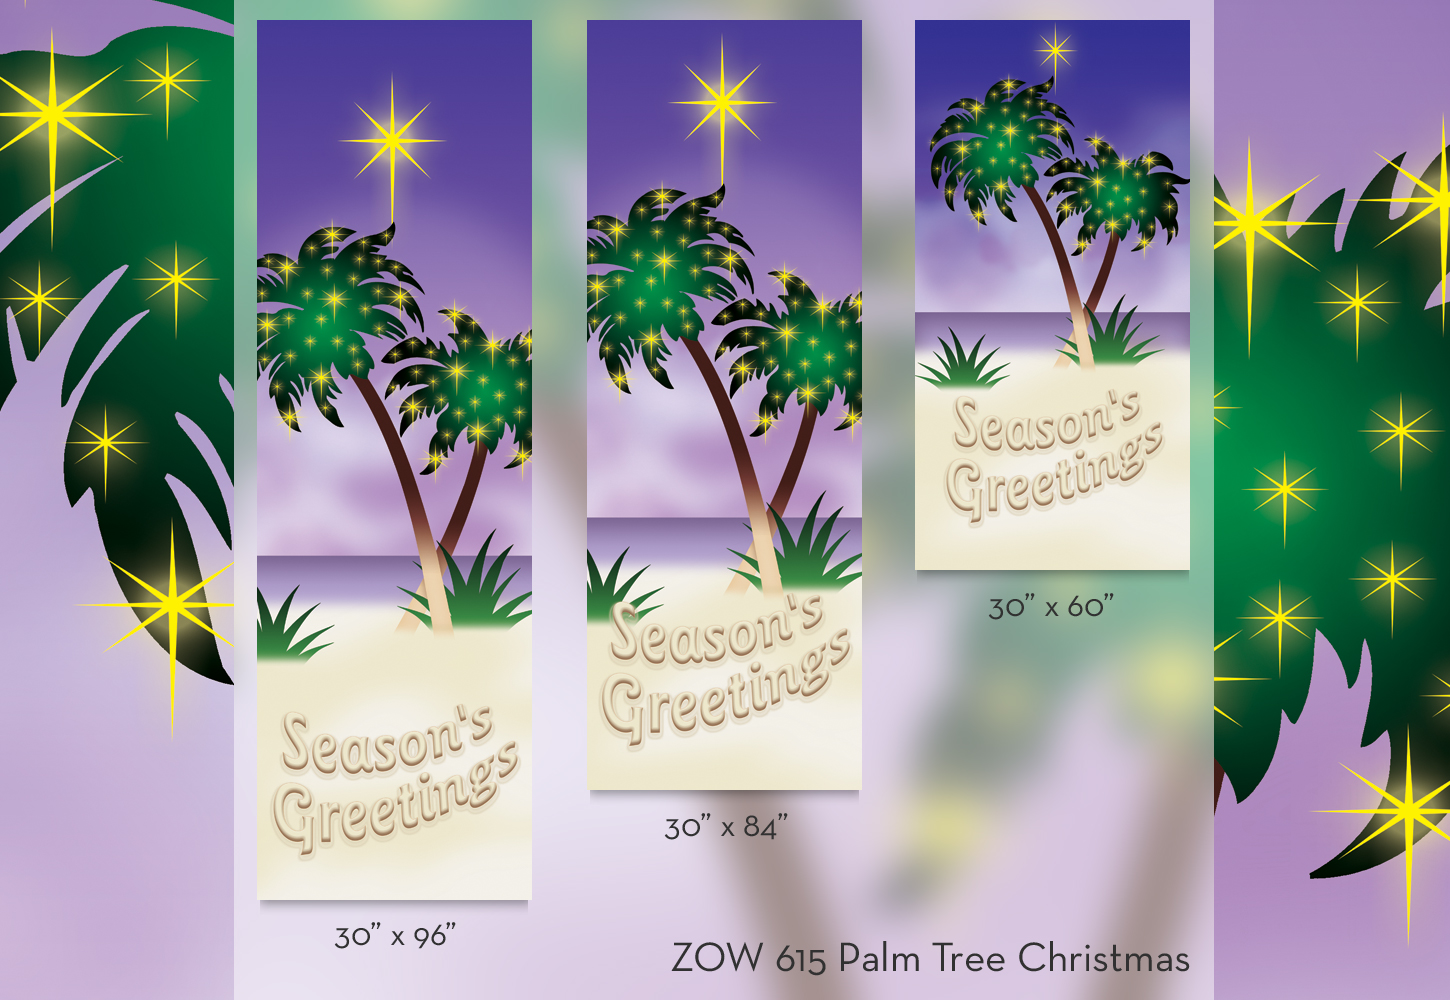 ZOW 615 Palm Tree Christmas